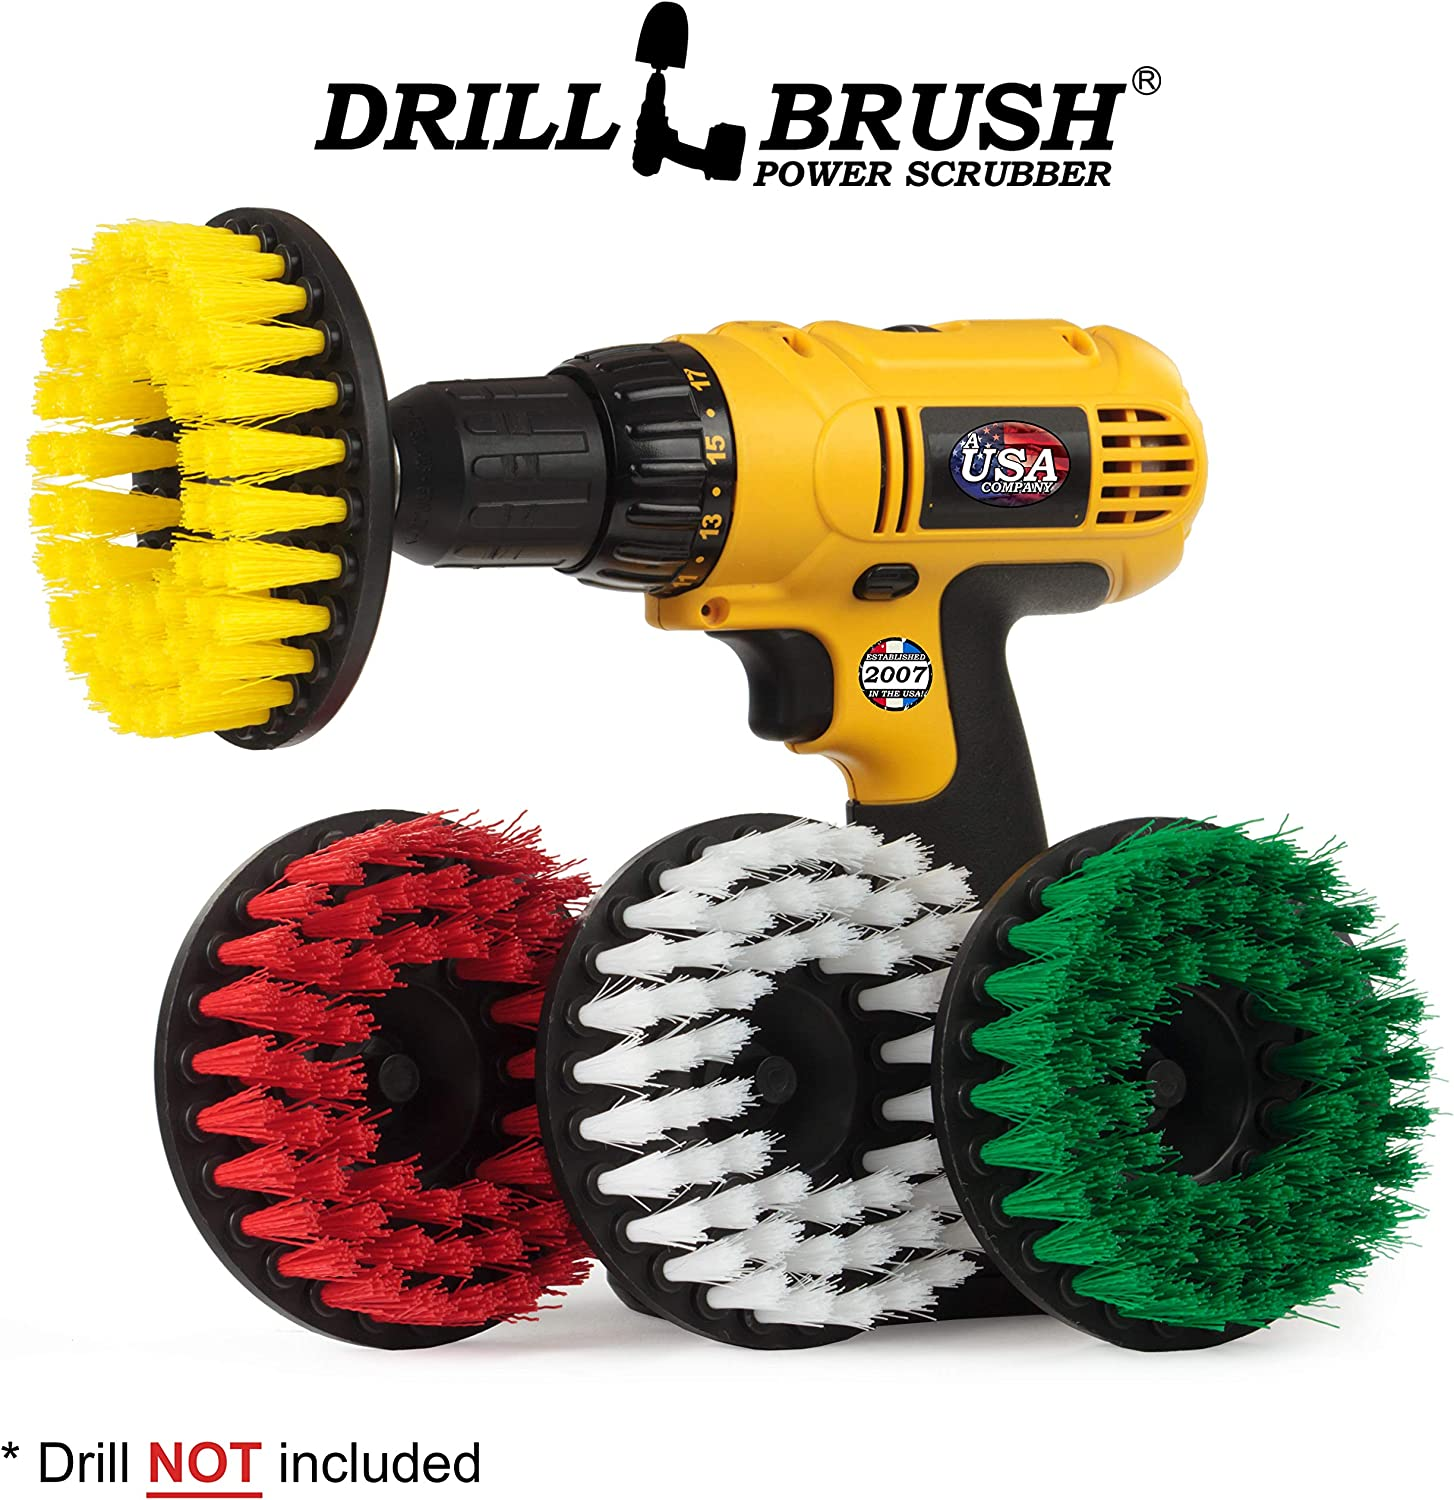 Scrub Brush - Cleaning Supplies - Drill Brush Power Scrubber Multi-Purpose Kit - Leather Cleaner - Spin Brush - Grout Cleaner - Shower Scrubber - Deck Brush - Glass Cleaner - Hard Water, Calcium, Rust